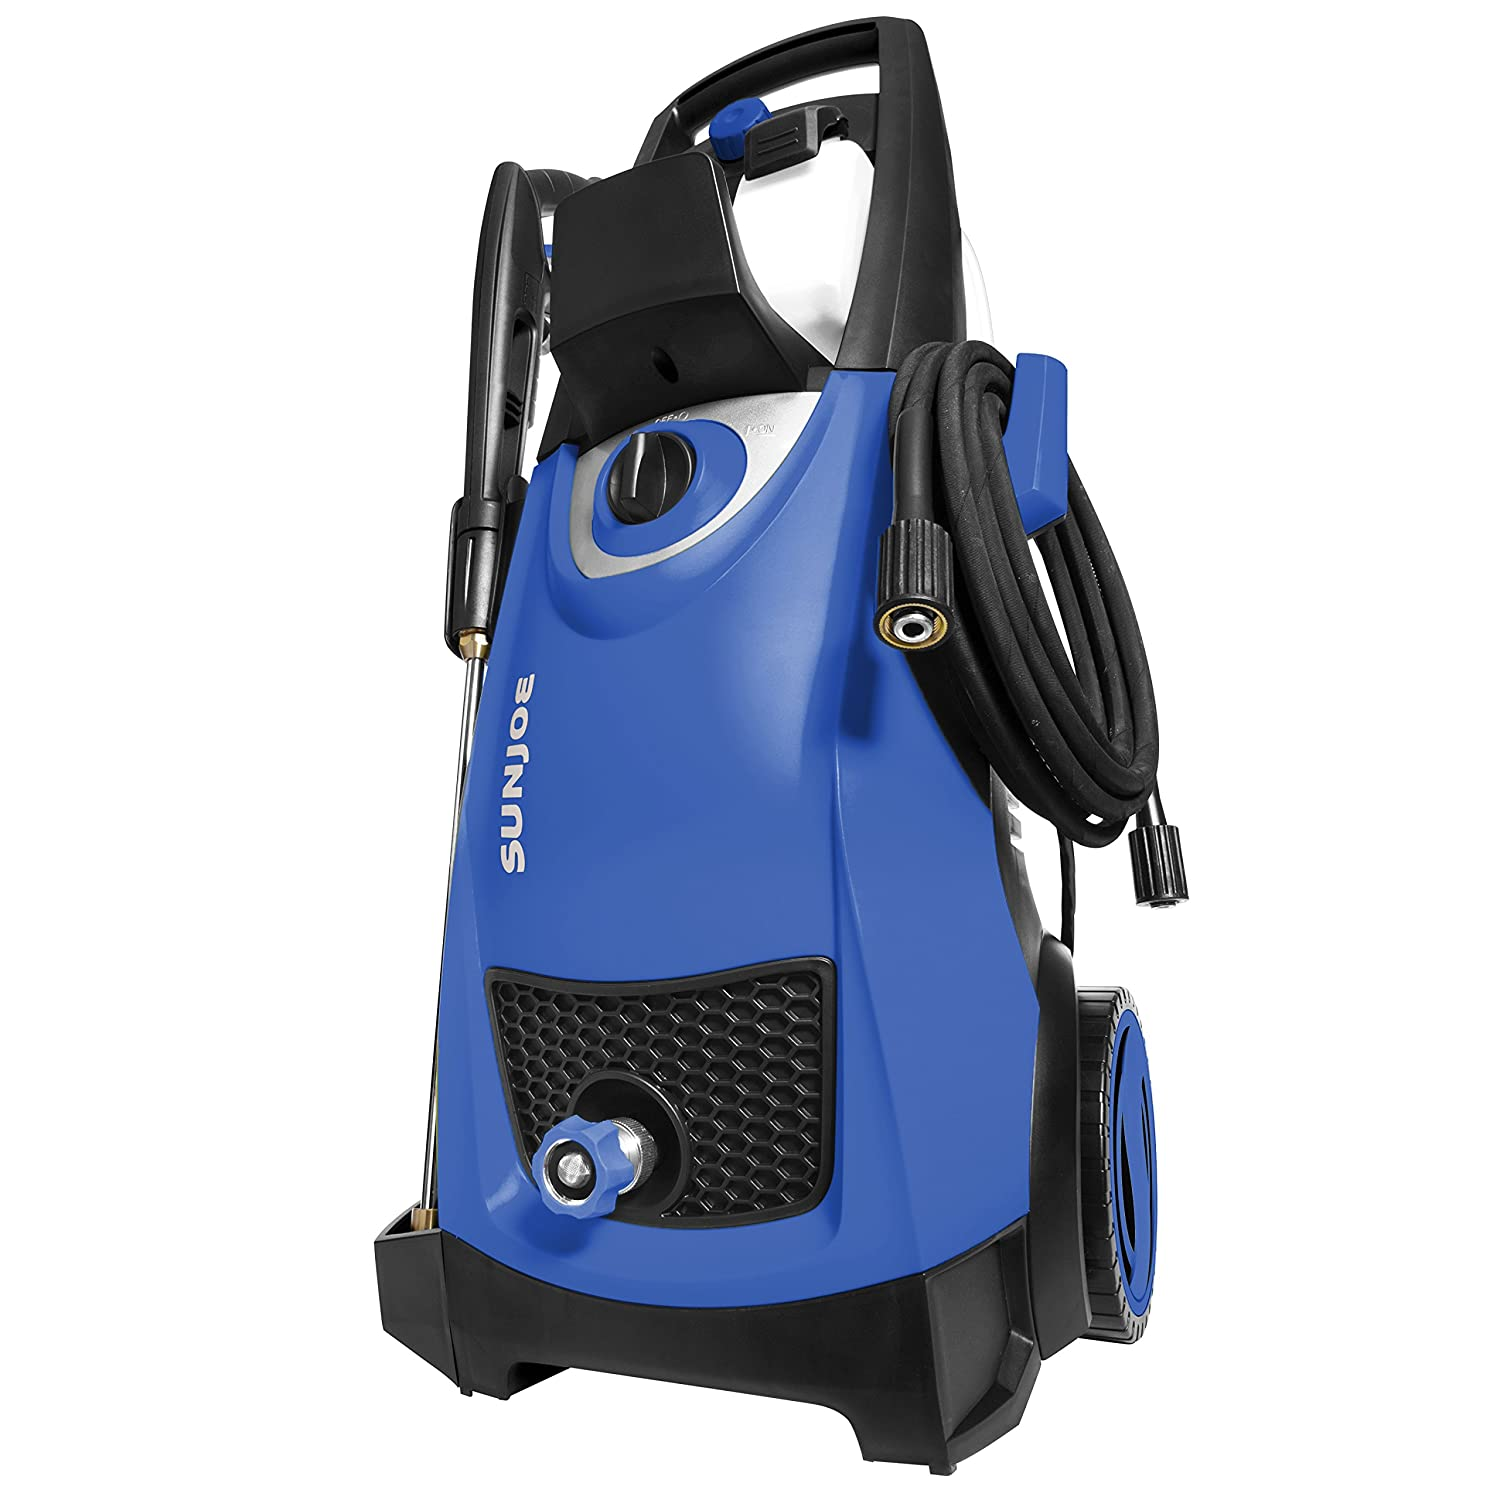 Sun Joe SPX3000-SJB Pressure Joe 2030 PSI 1.76 GPM 14.5-Amp Electric Pressure Washer, Dark Blue